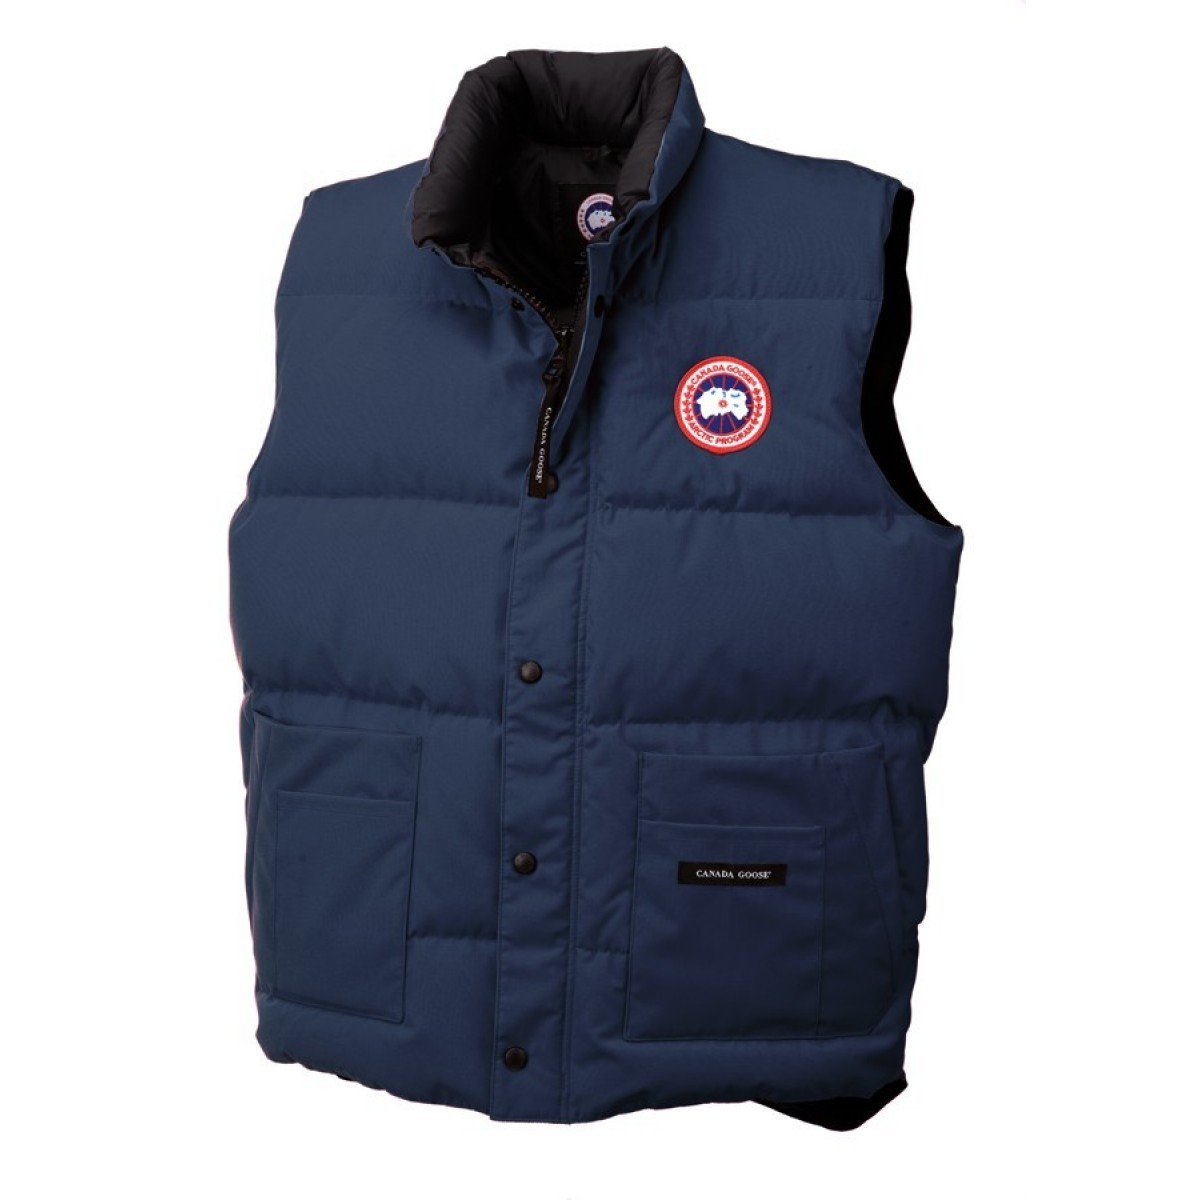 CANADA GOOSE FREESTYLE VEST SPIRIT HOMME